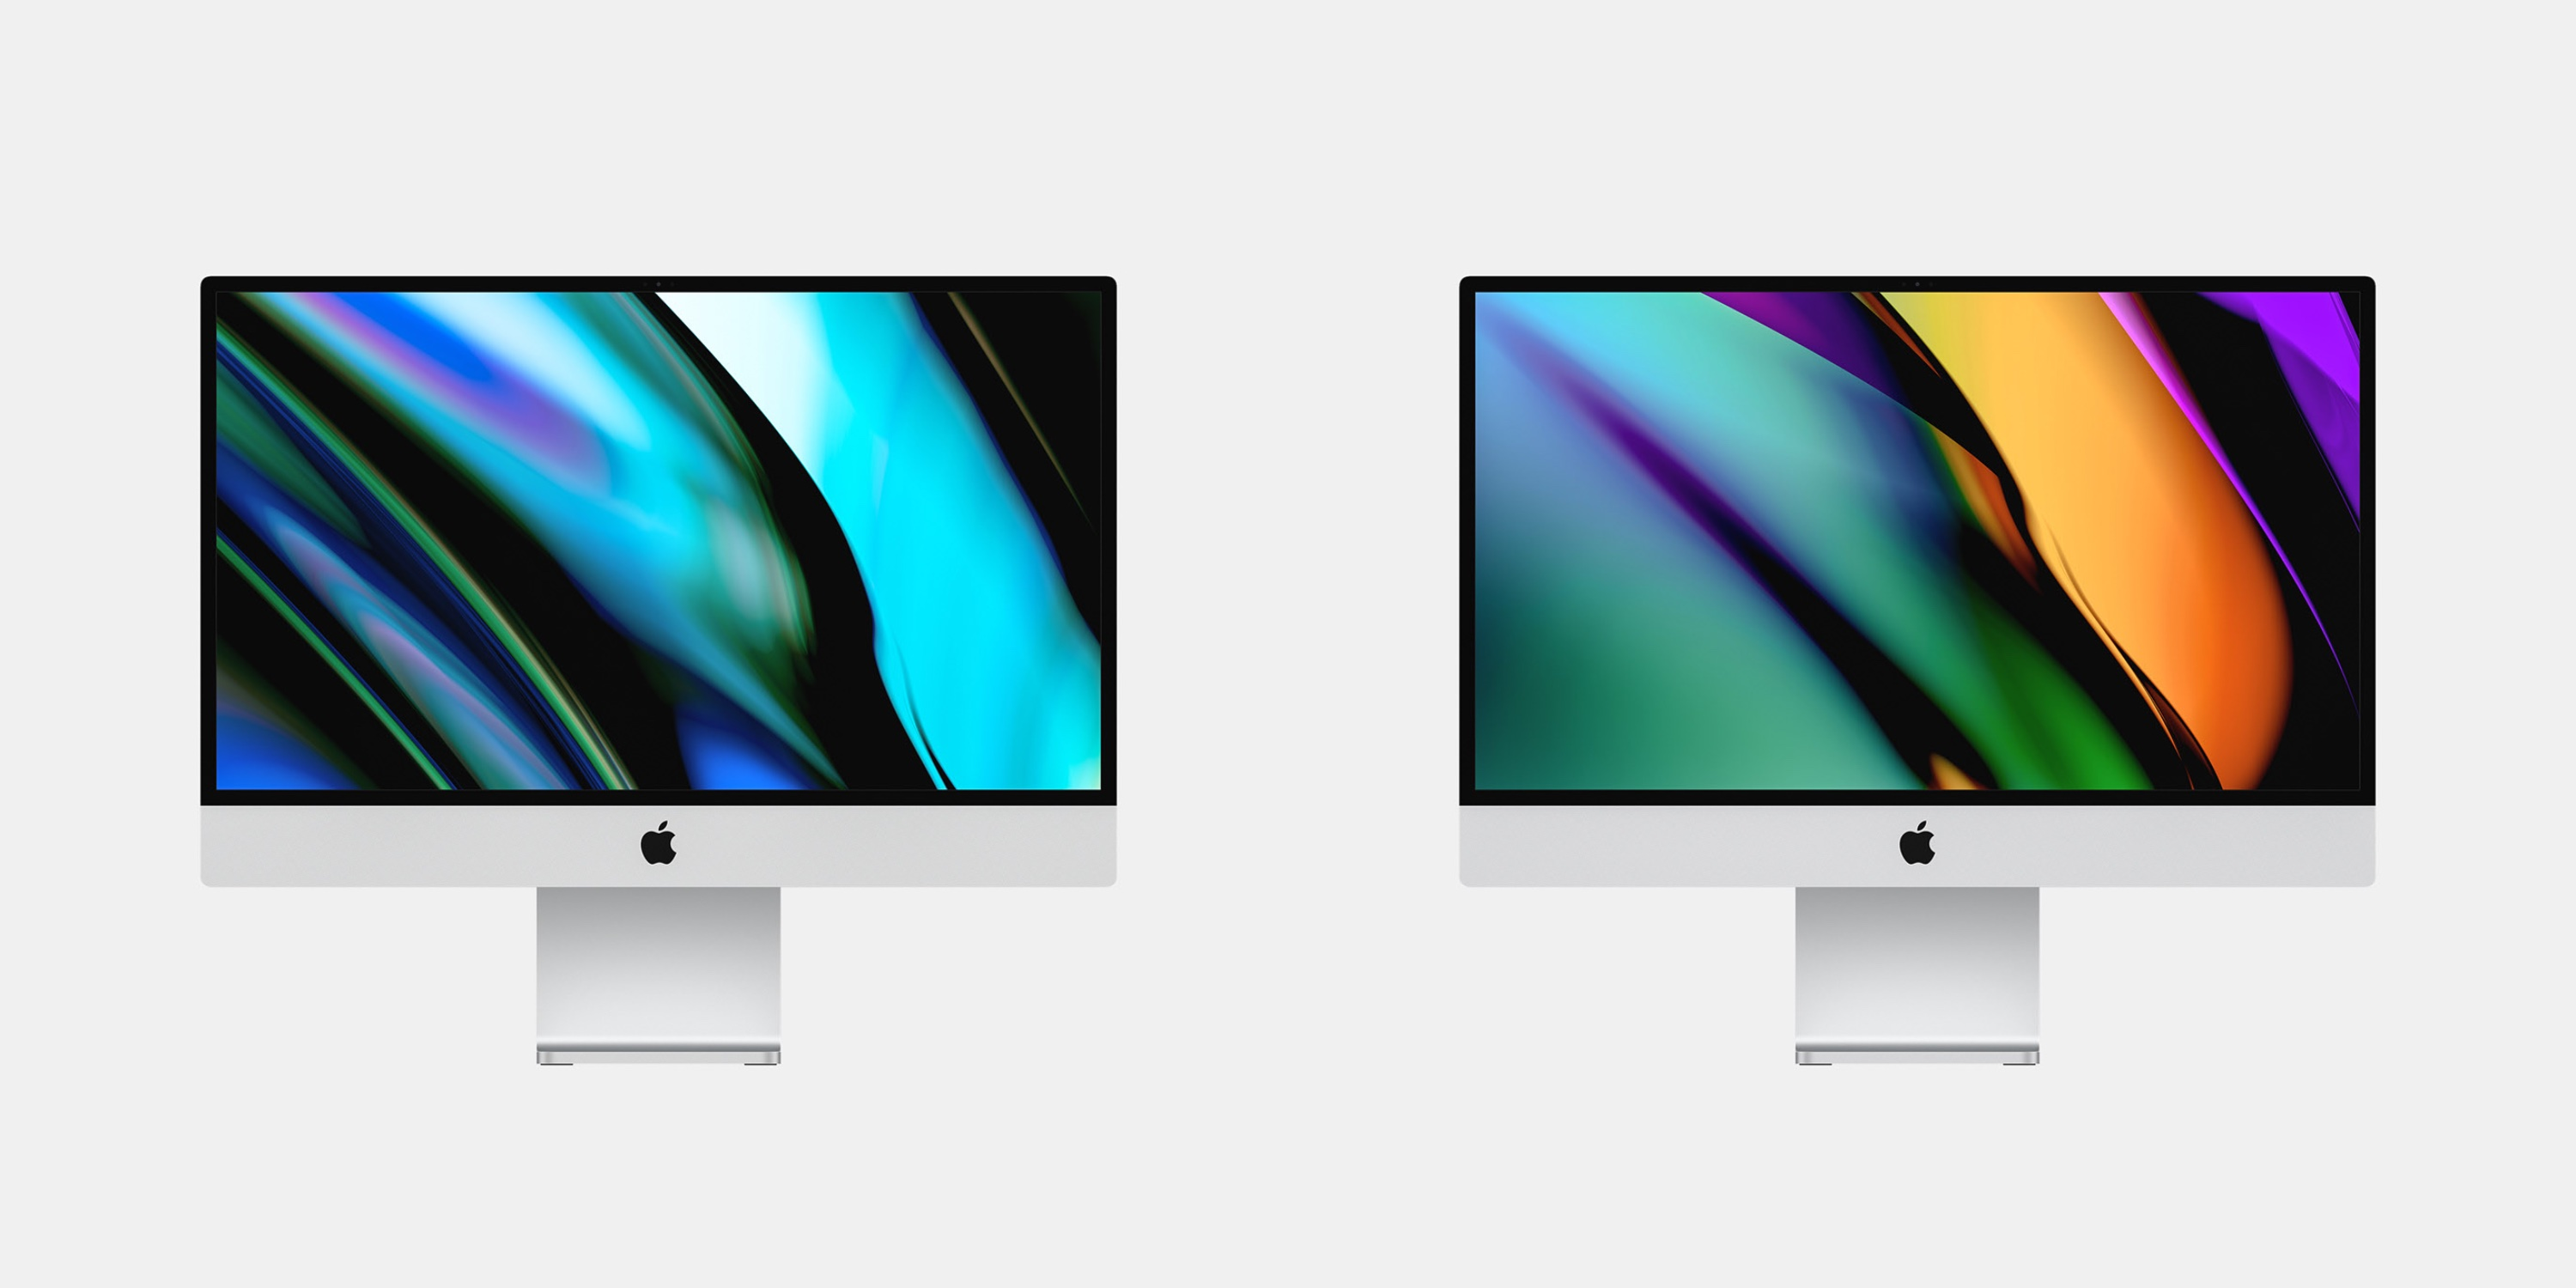 Will you buy an updated 23-inch iMac? Poll - 9to5Mac